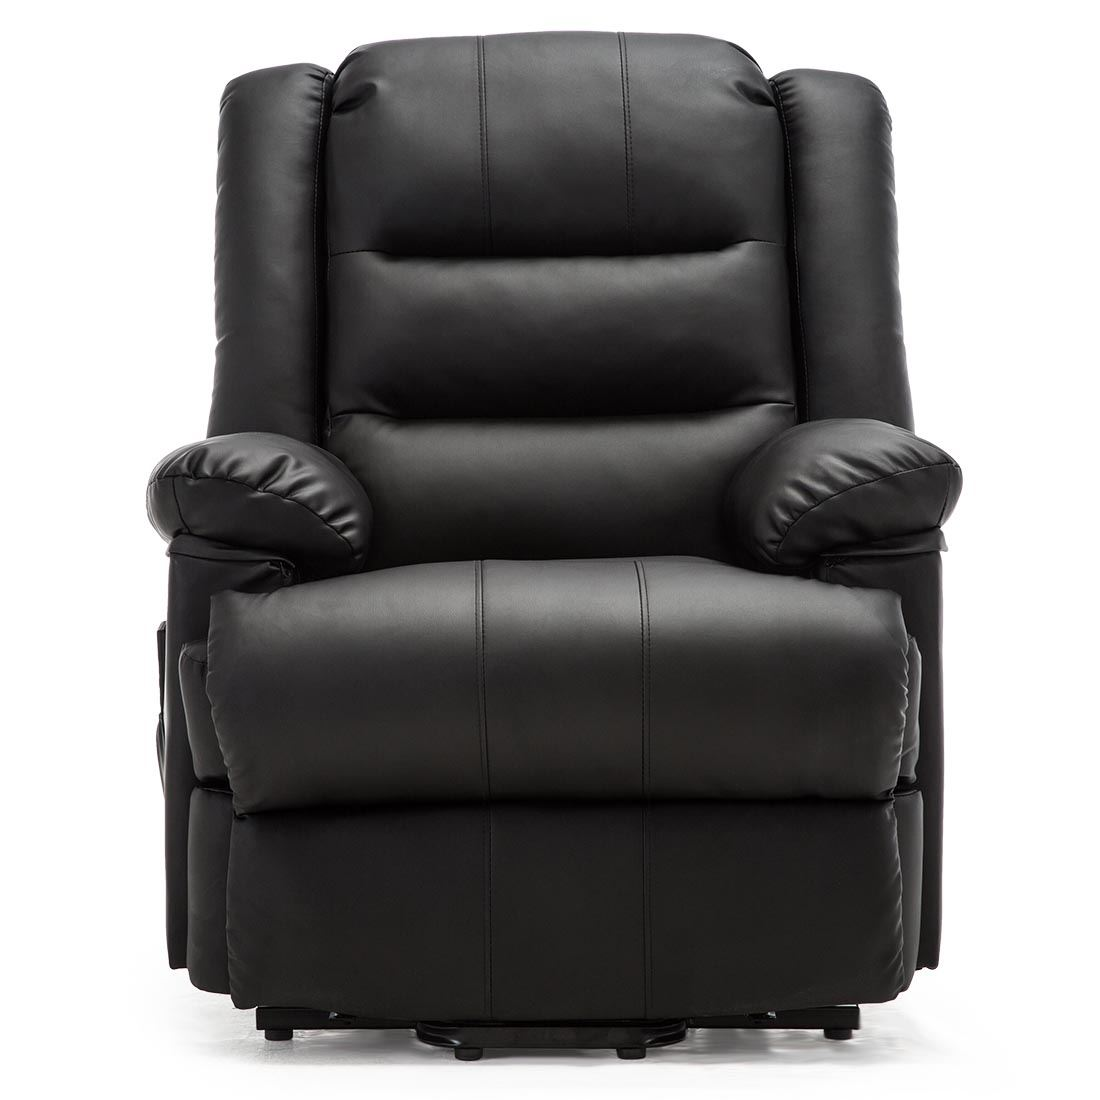 Loxley Dual Motor Electric Riser Recliner Bonded Leather